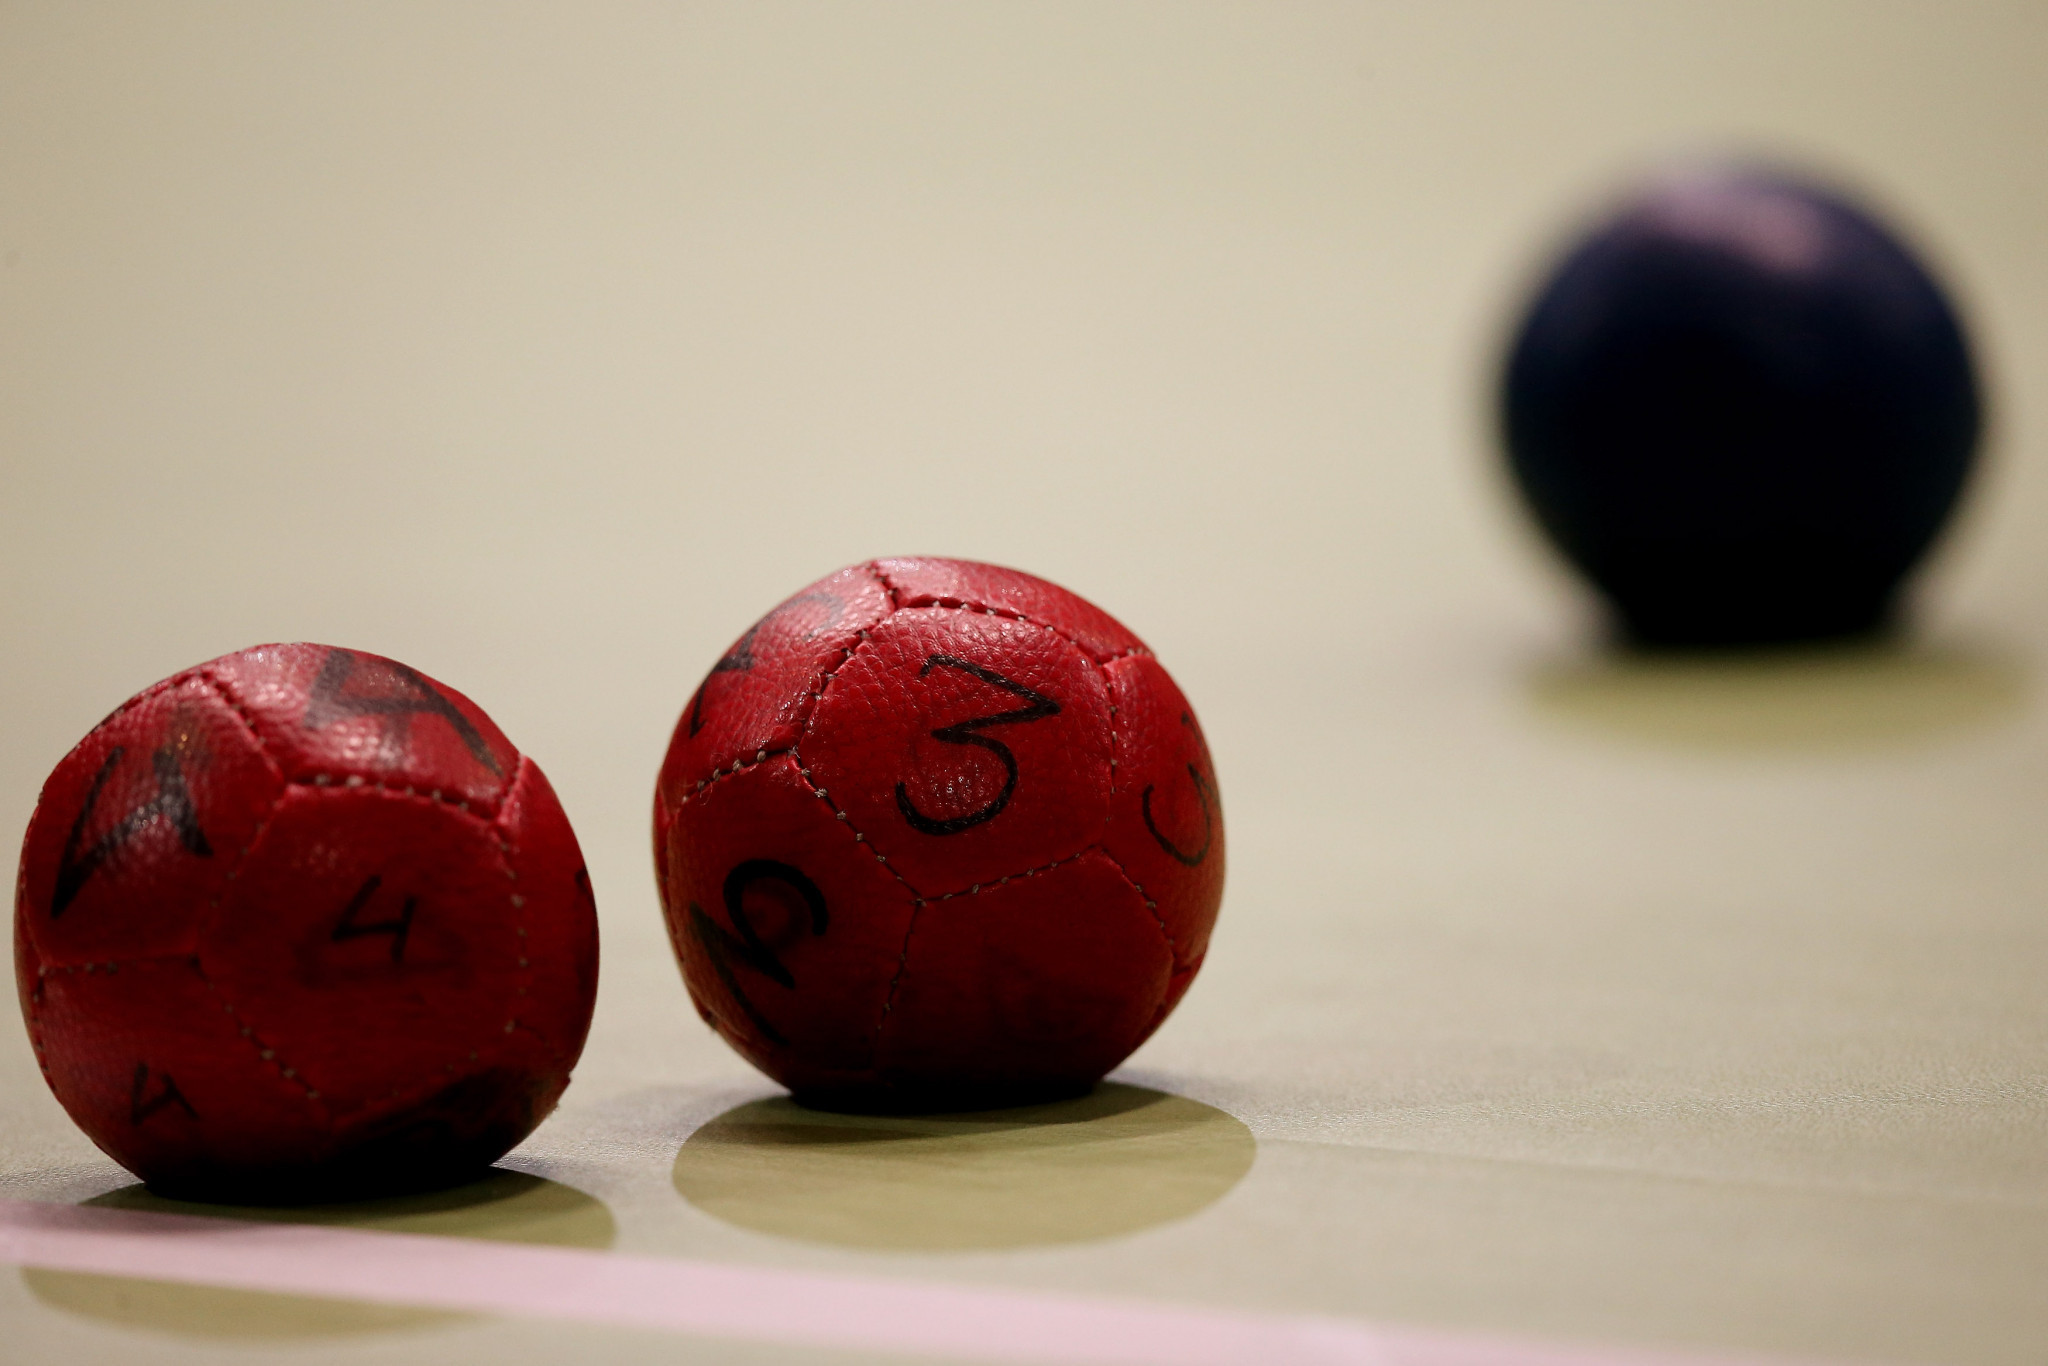 BISFed planning for full calendar of boccia events in final quarter of 2021